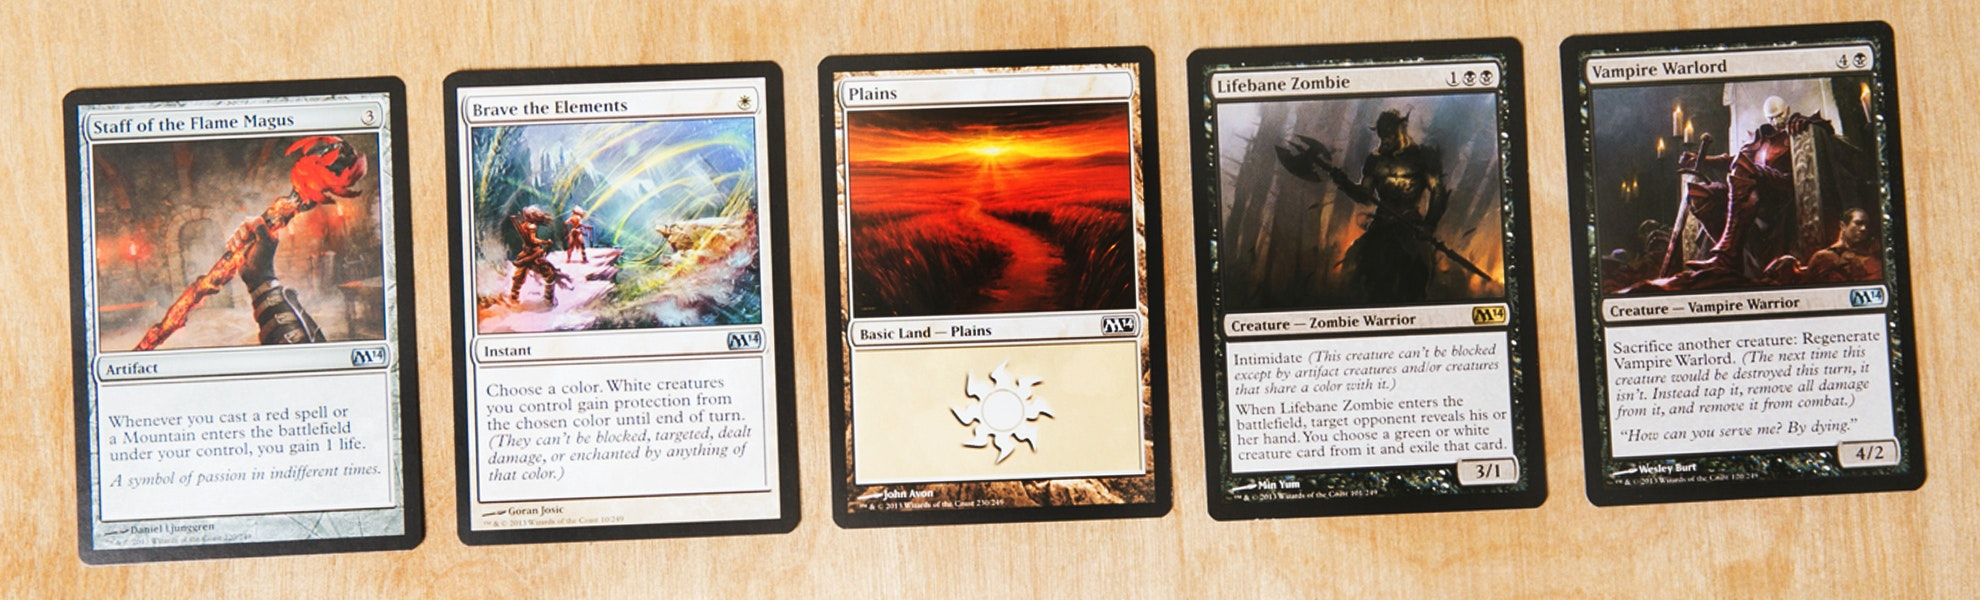 Magic 2014 Booster Battle Pack Display